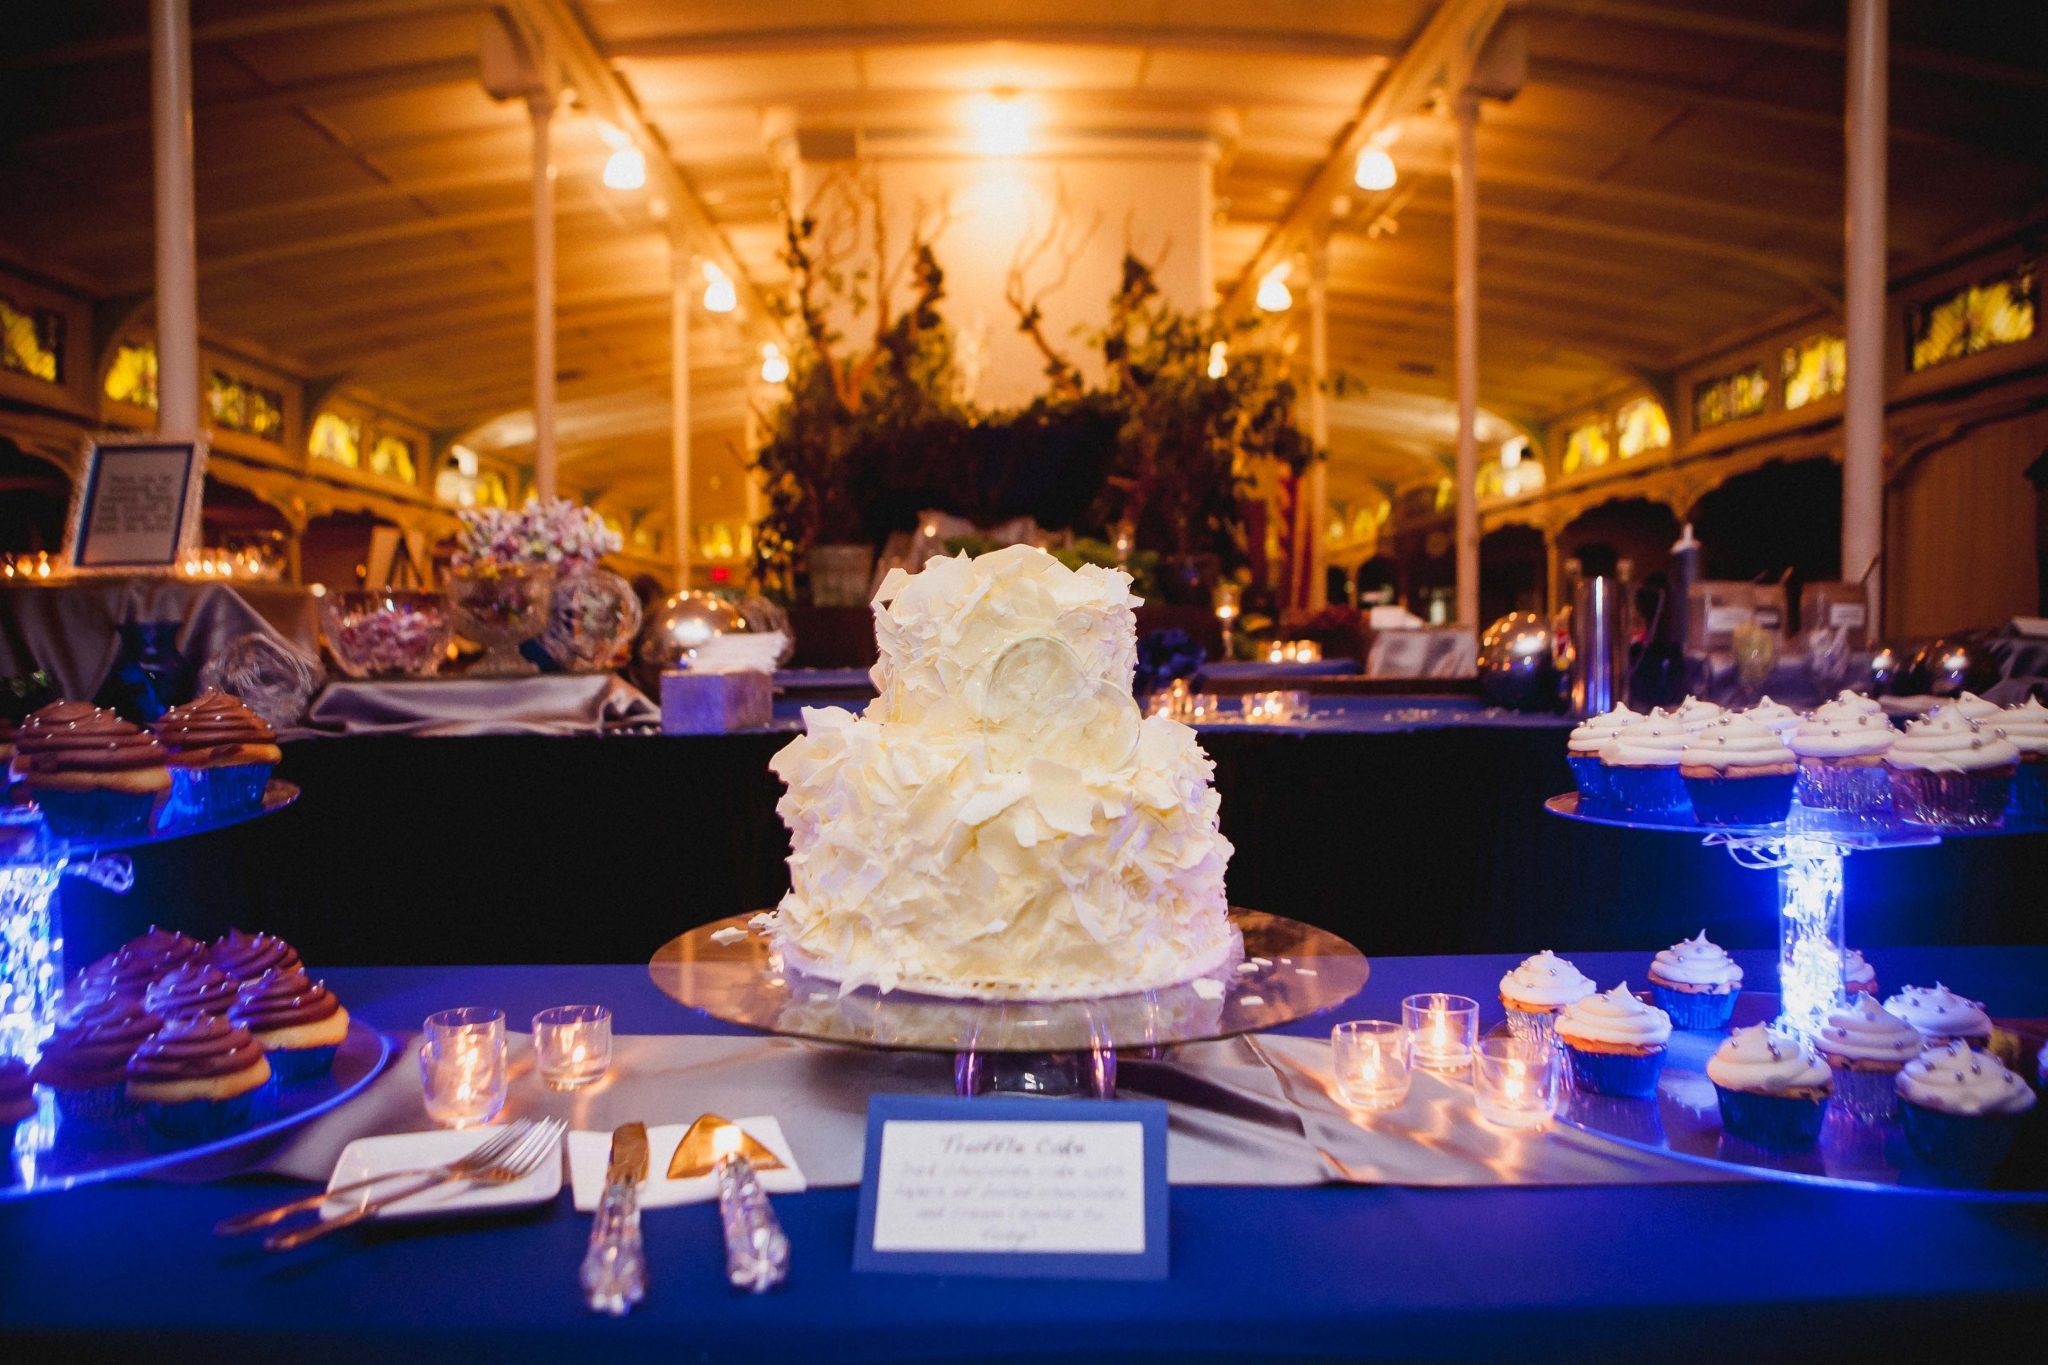 Wedding cake and dessert table with cupcakes during the reception